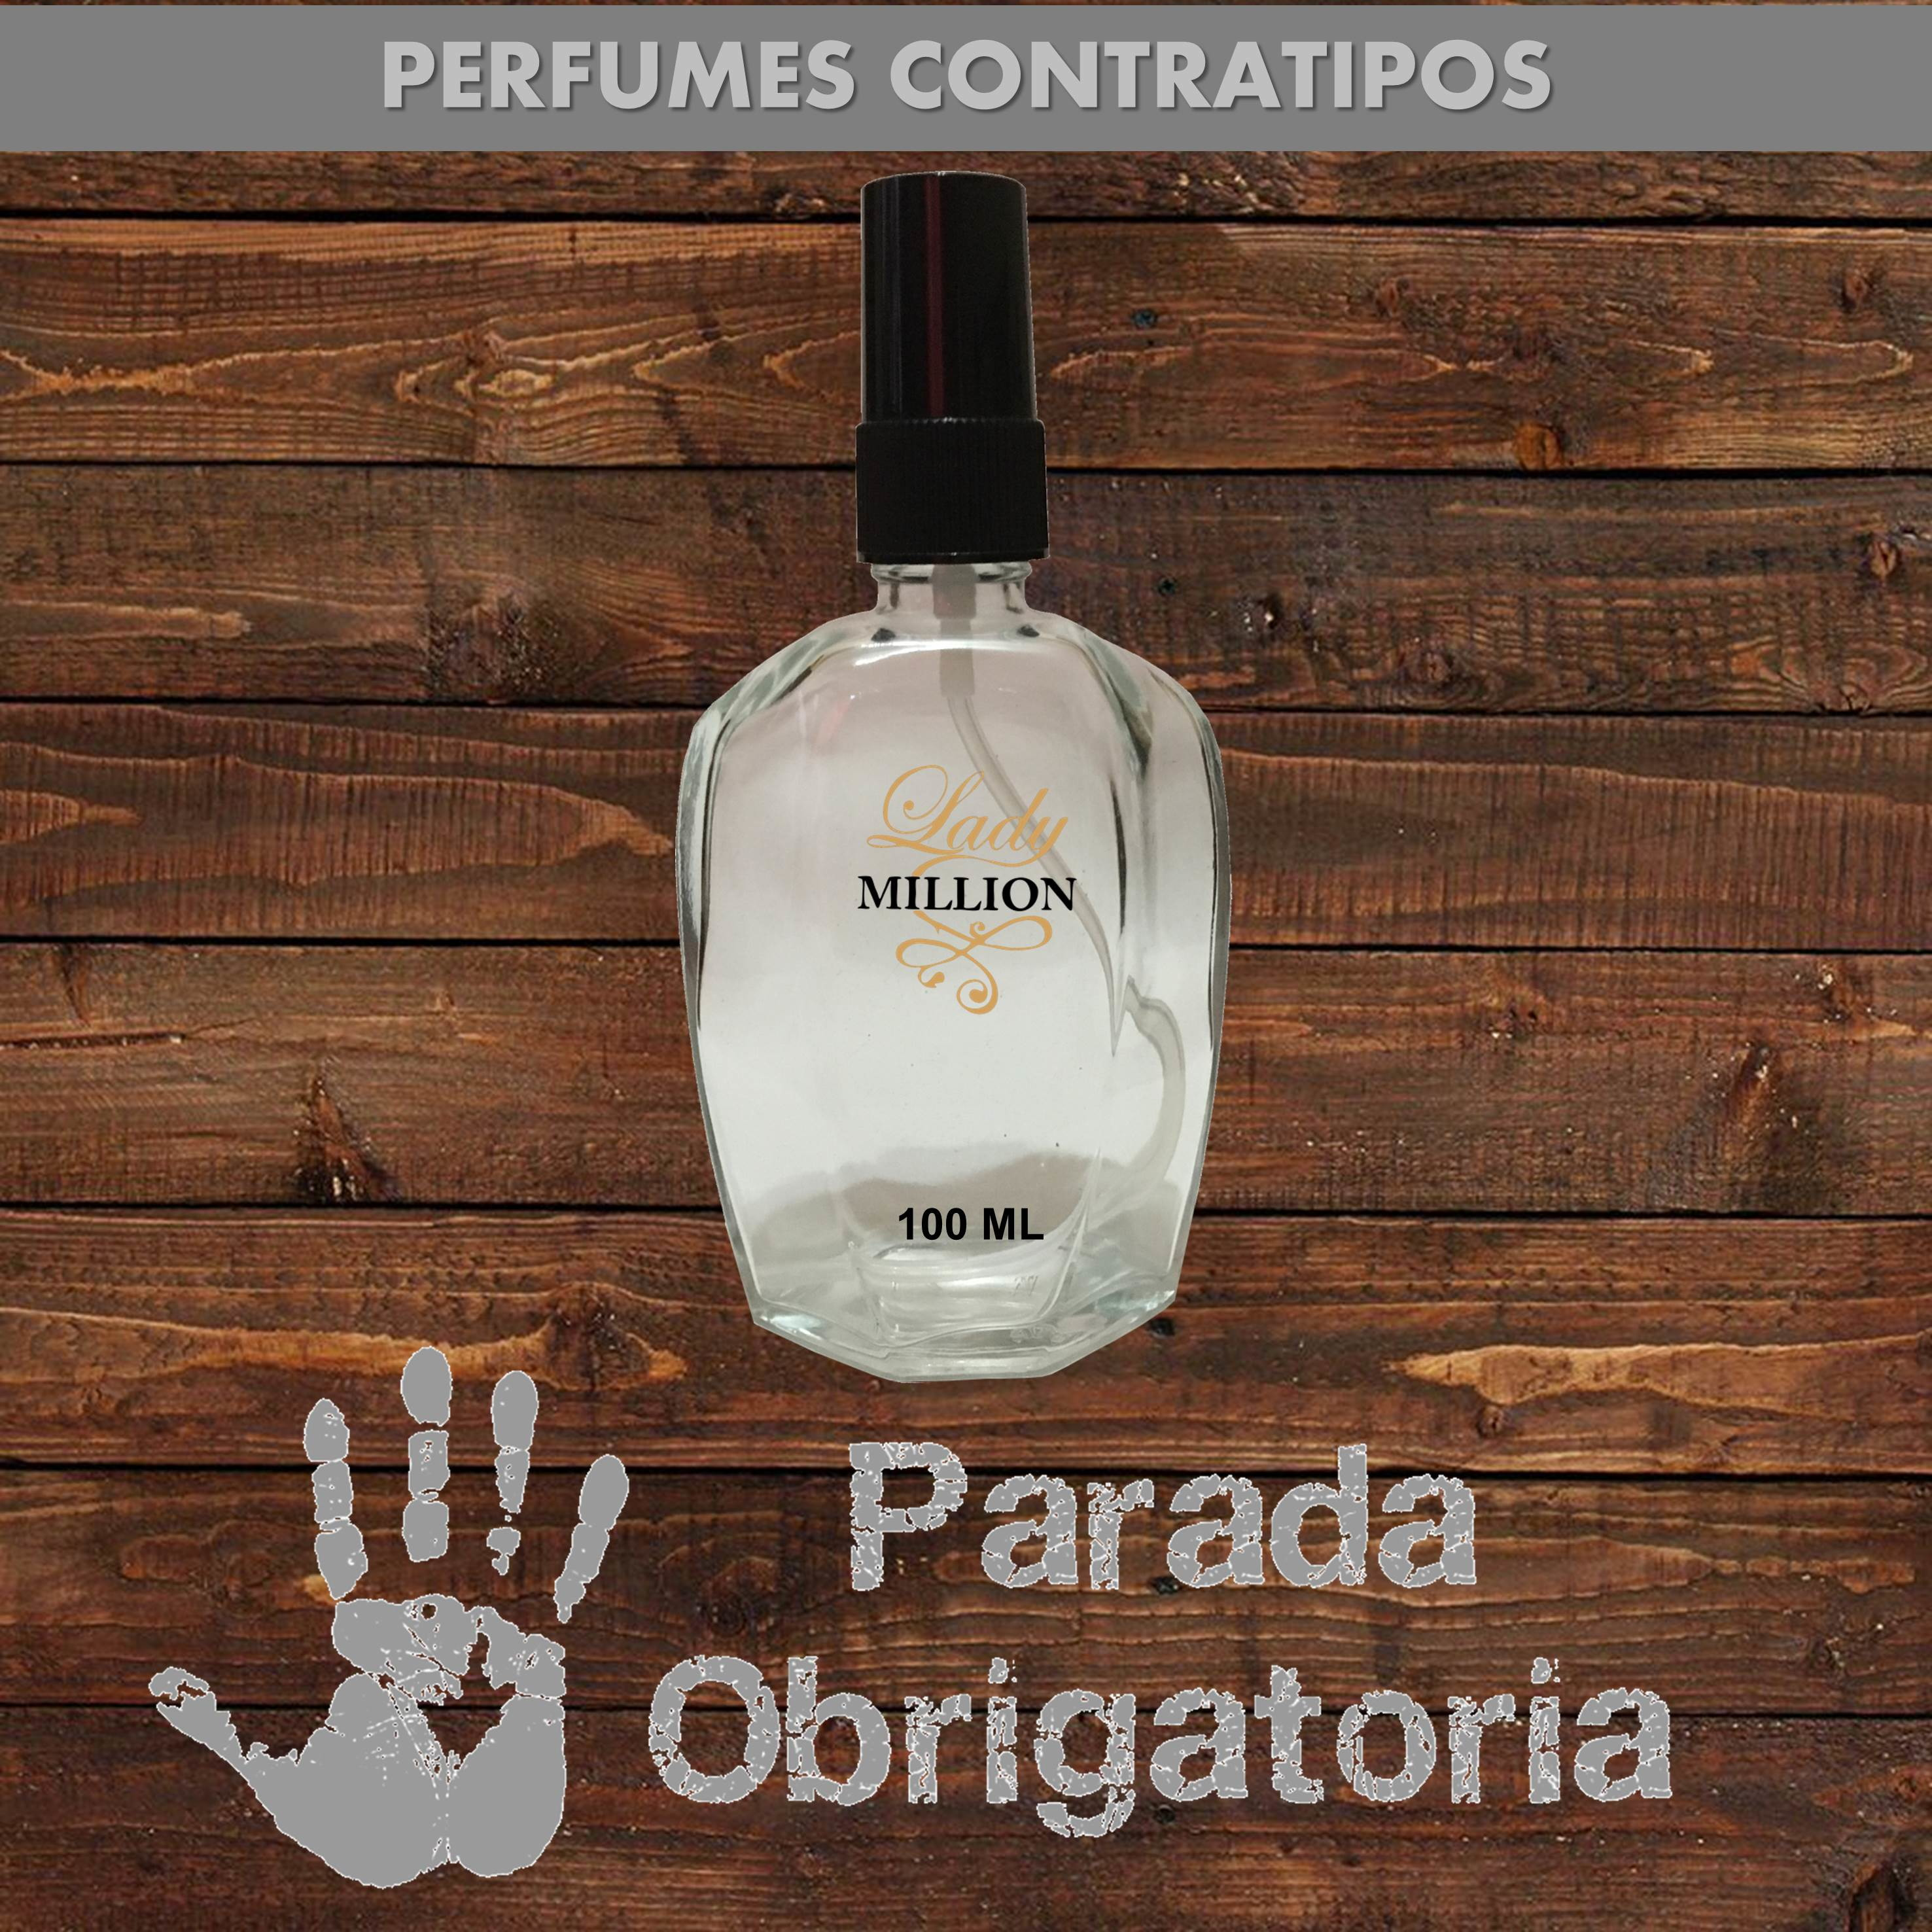 aca383521 Contratipo do Prada Feminino 100ml | Elo7